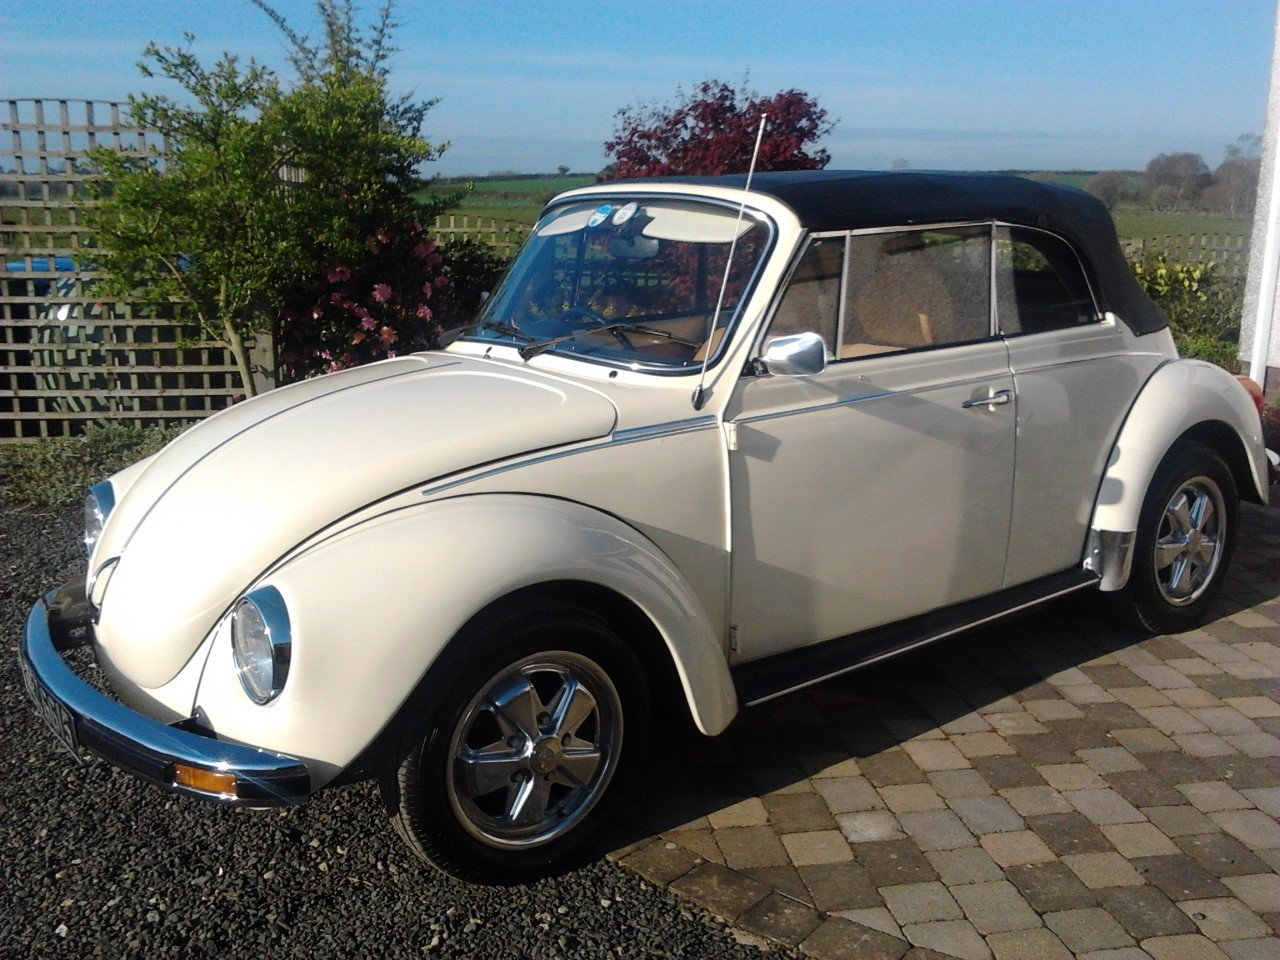 1978 VW Beetle 1303s Karmann Convertible RHD SOLD (picture 1 of 4)